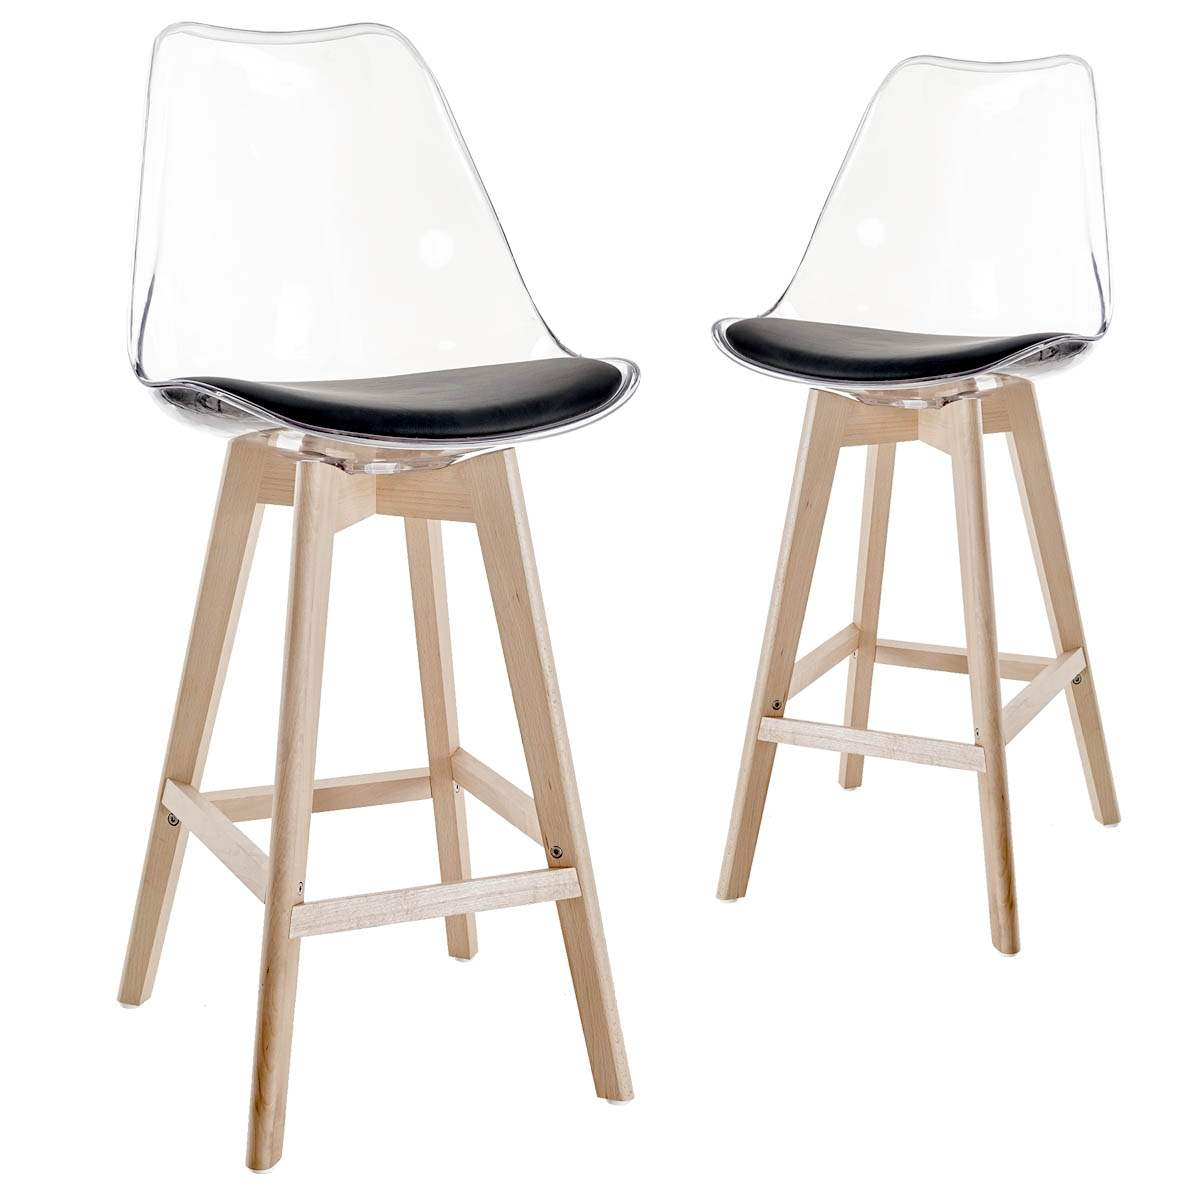 Tabourets De Bar Transparents Deco In Paris 4 Lot De 2 Tabourets De Bar Scandinaves